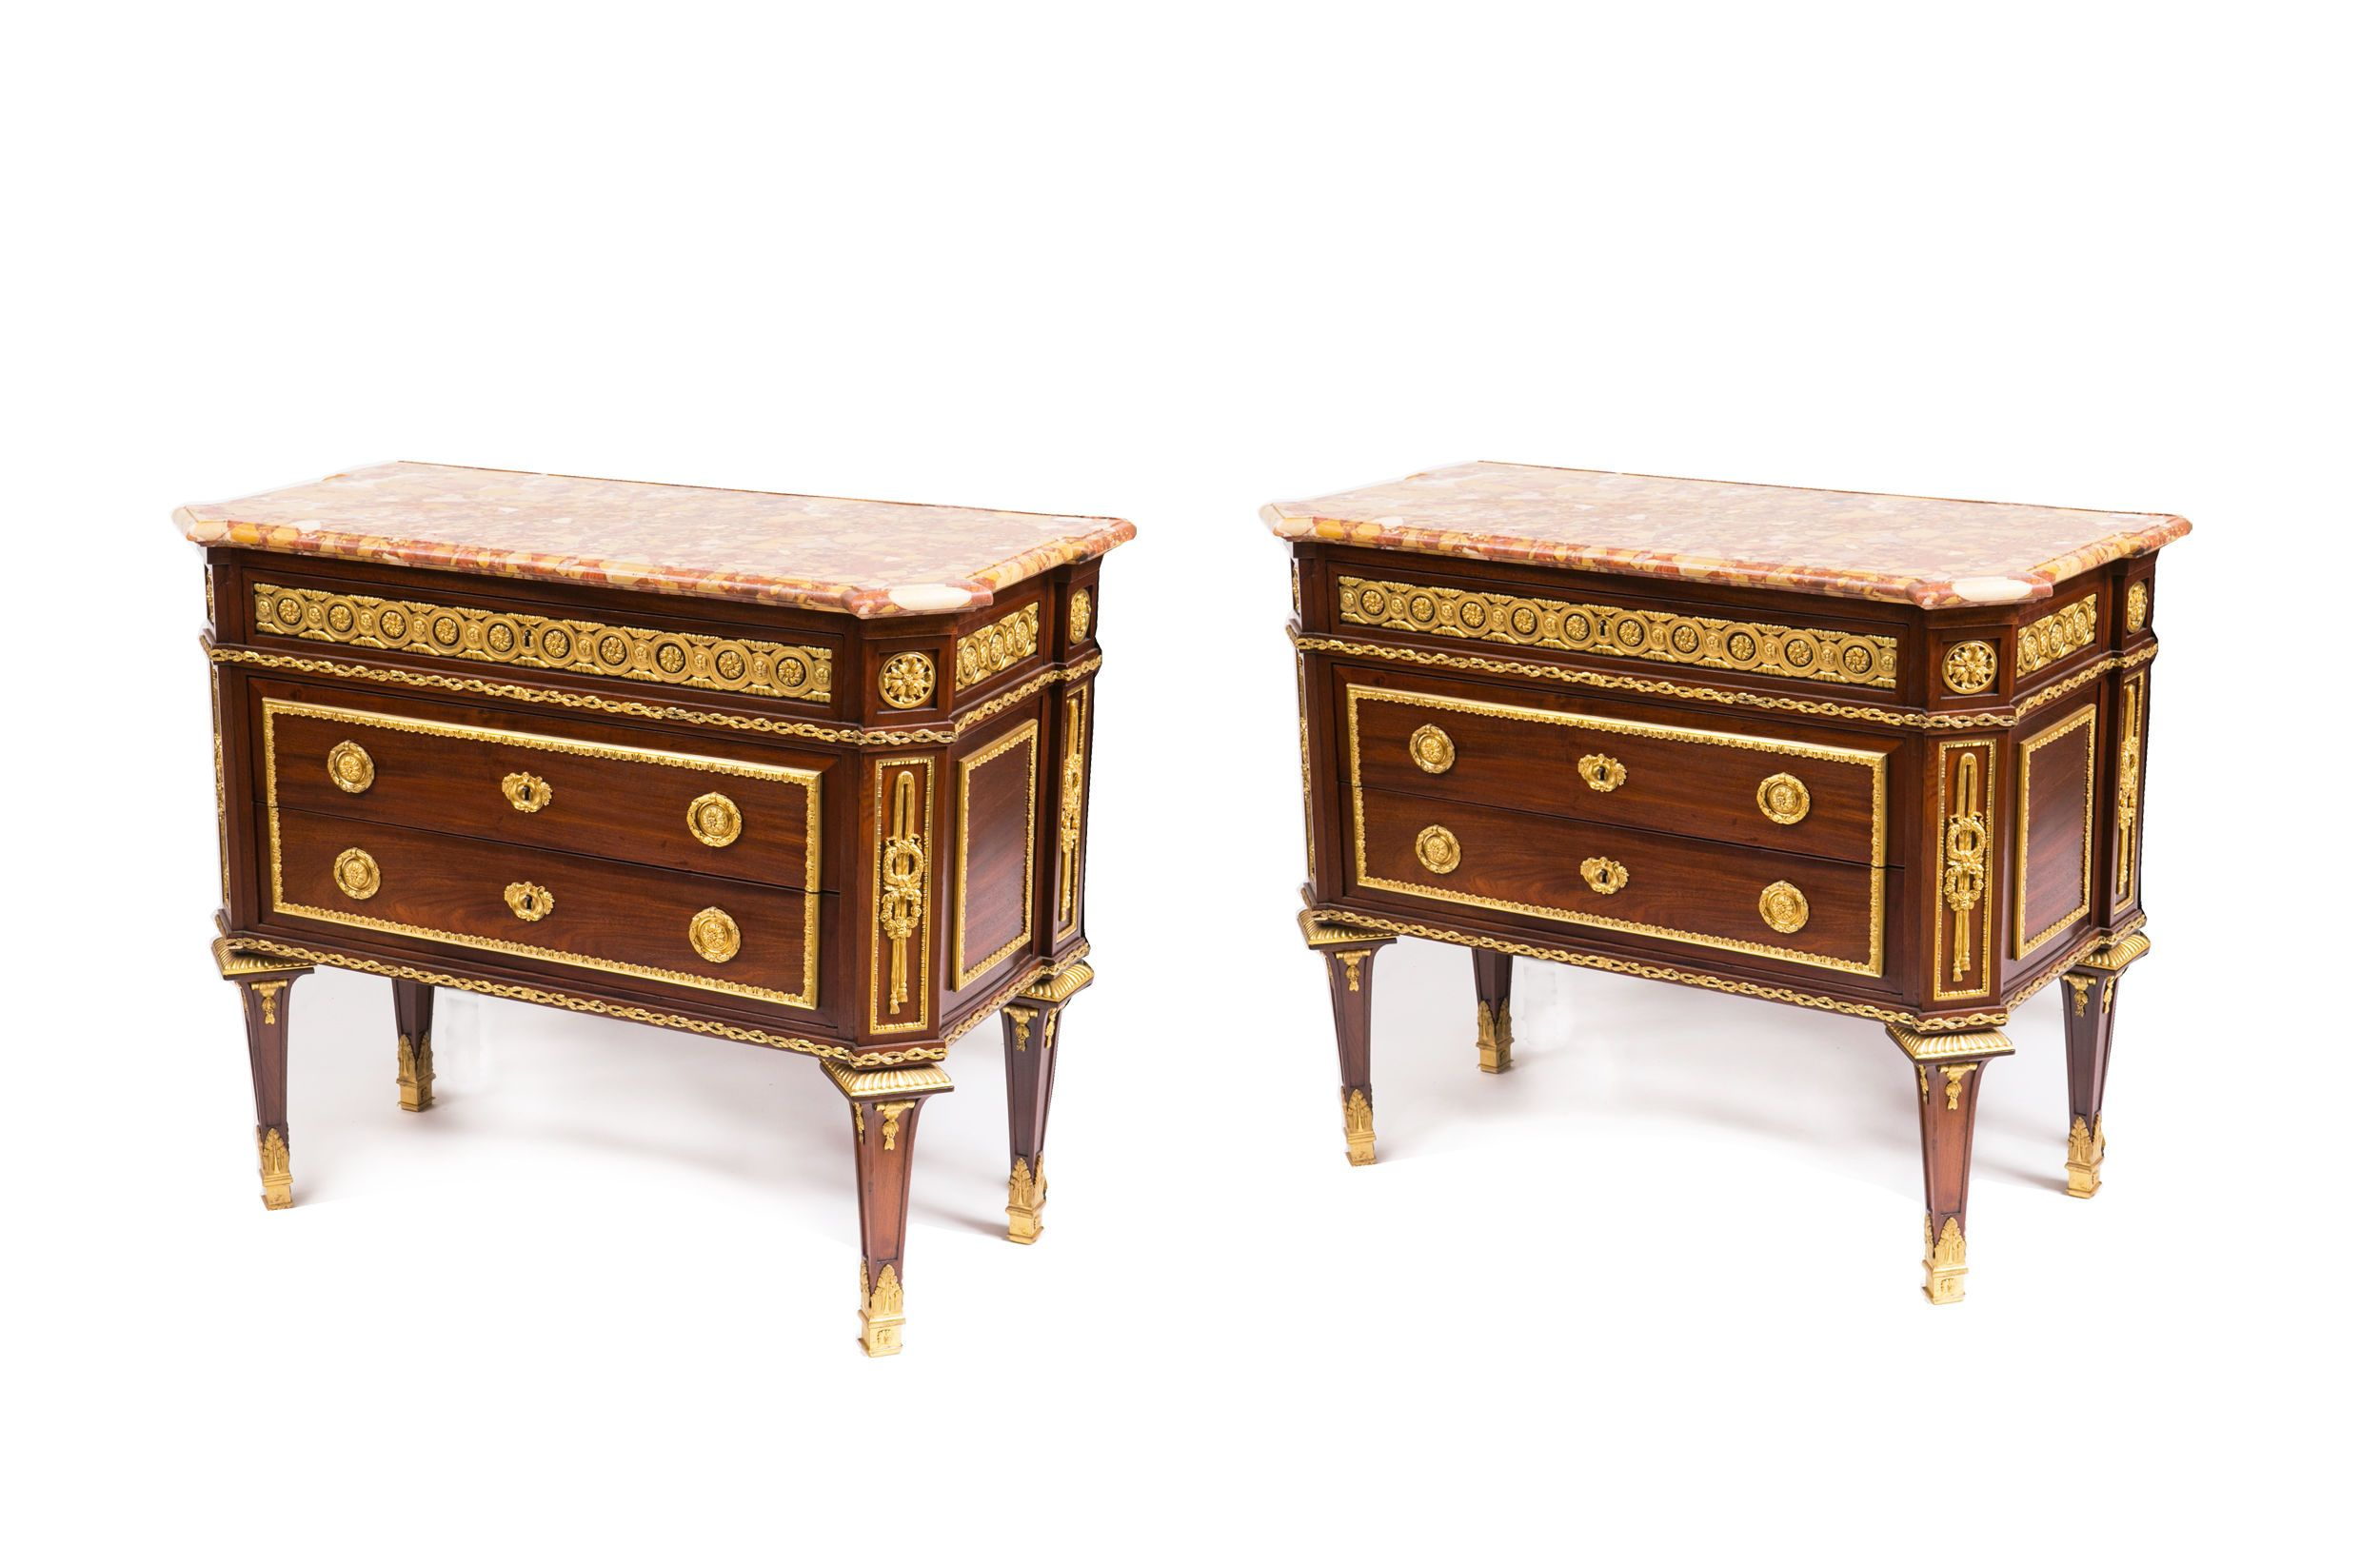 Antique Furniture Collection With